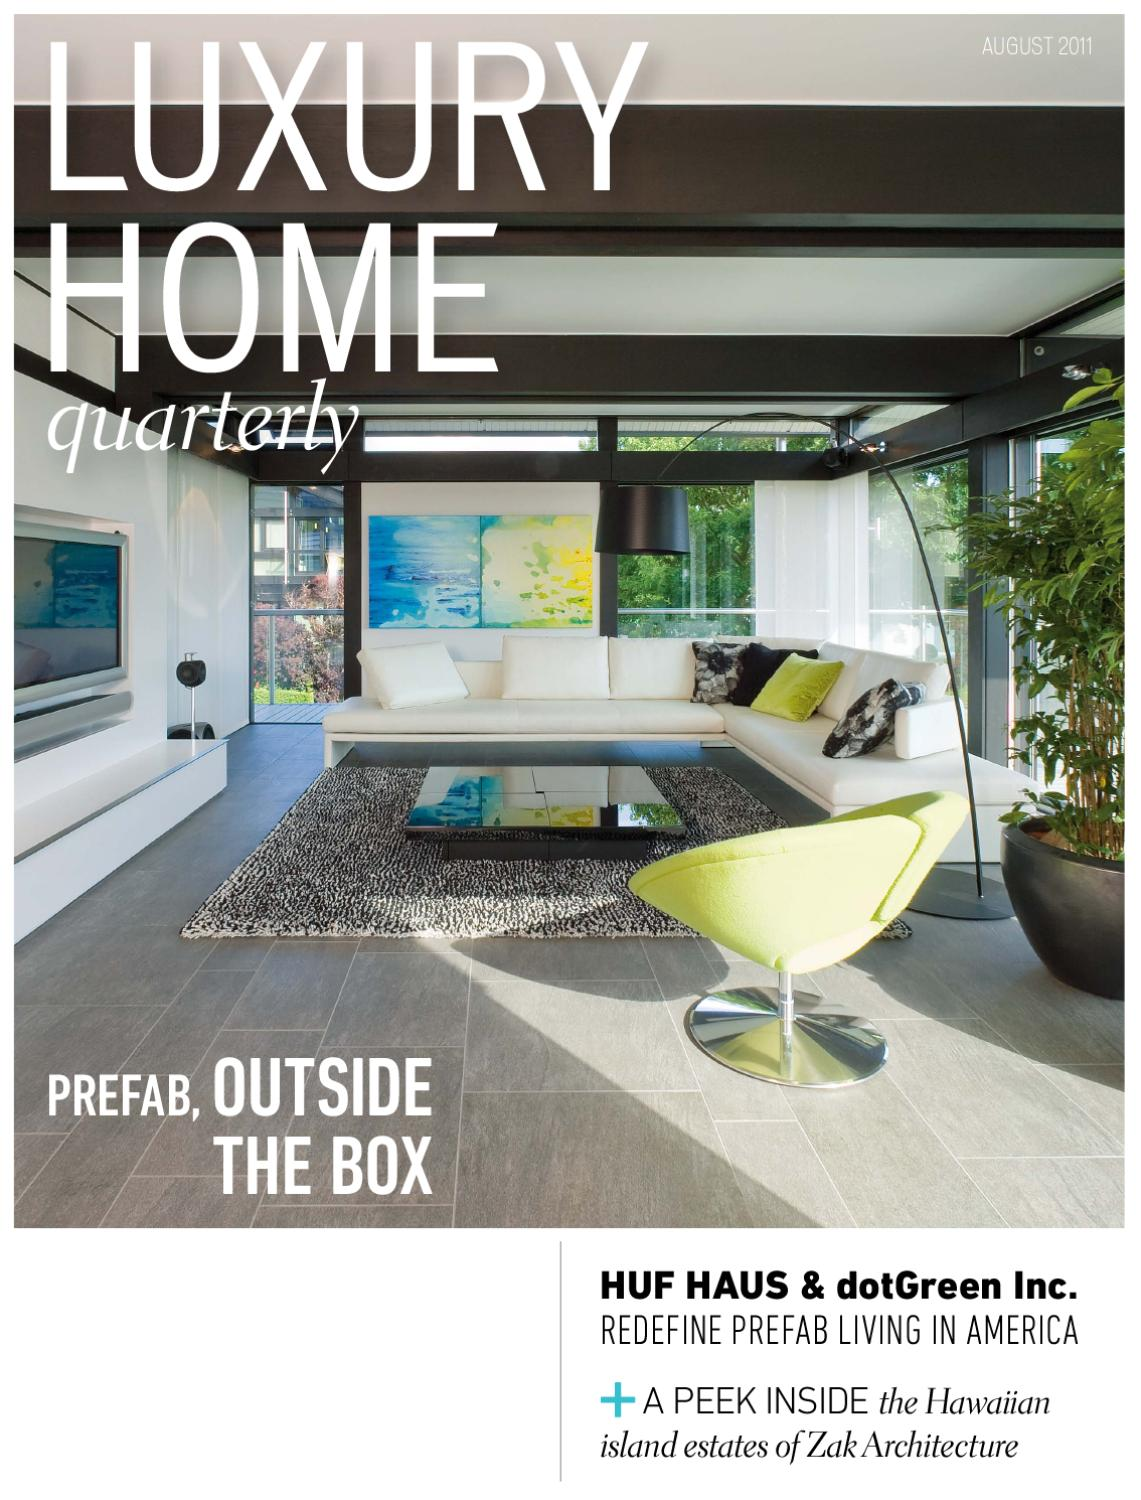 Container Haus Löhne Luxury Home Quarterly Issue 12